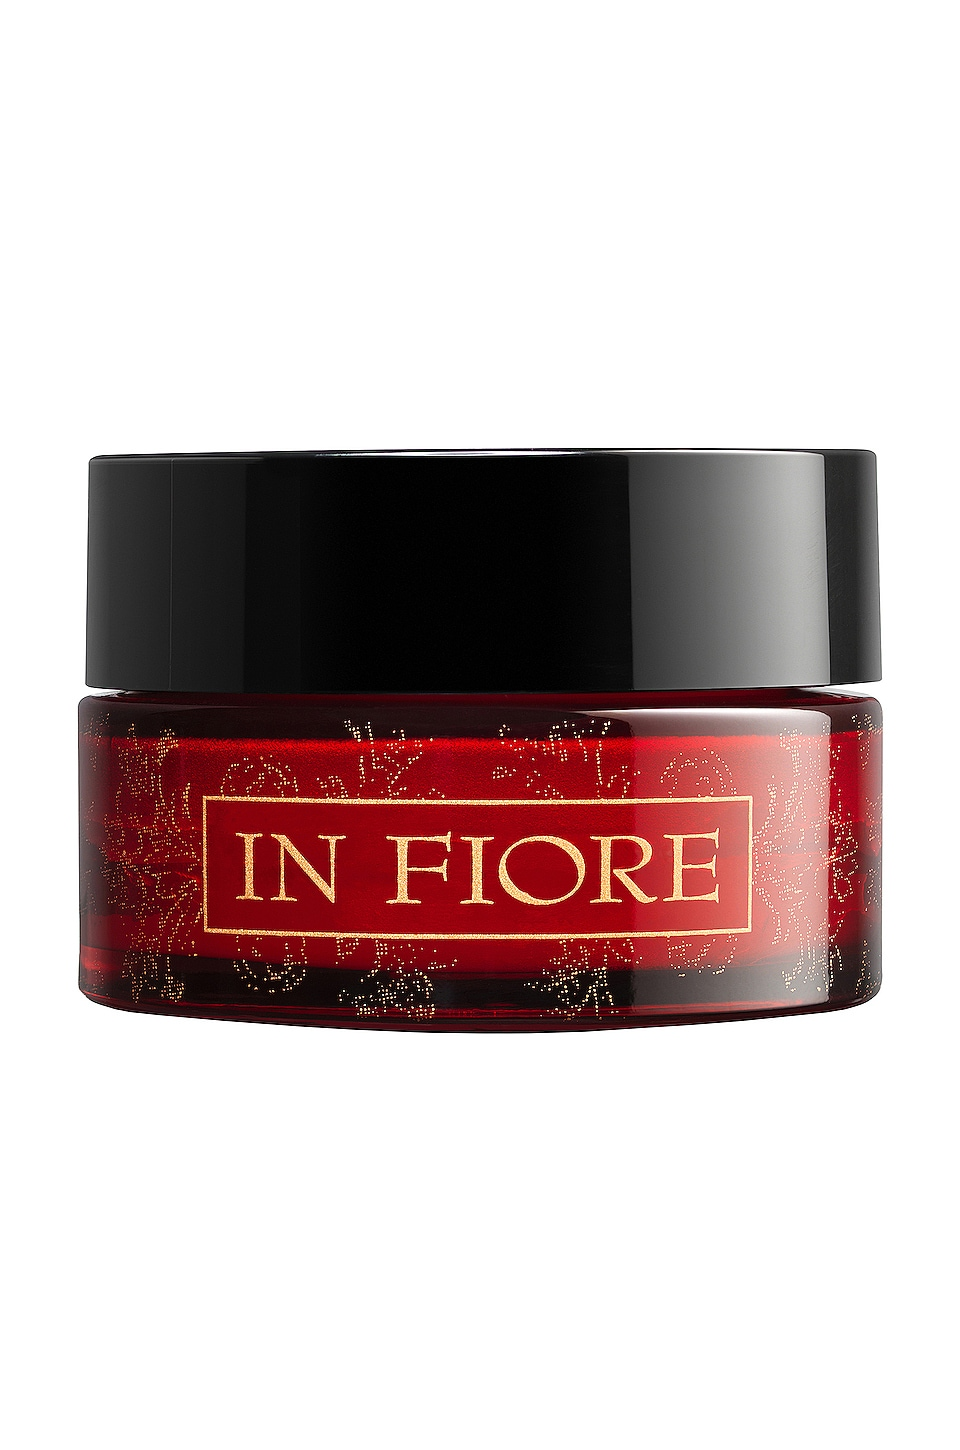 In Fiore Decollete Luxury Treatment Balm